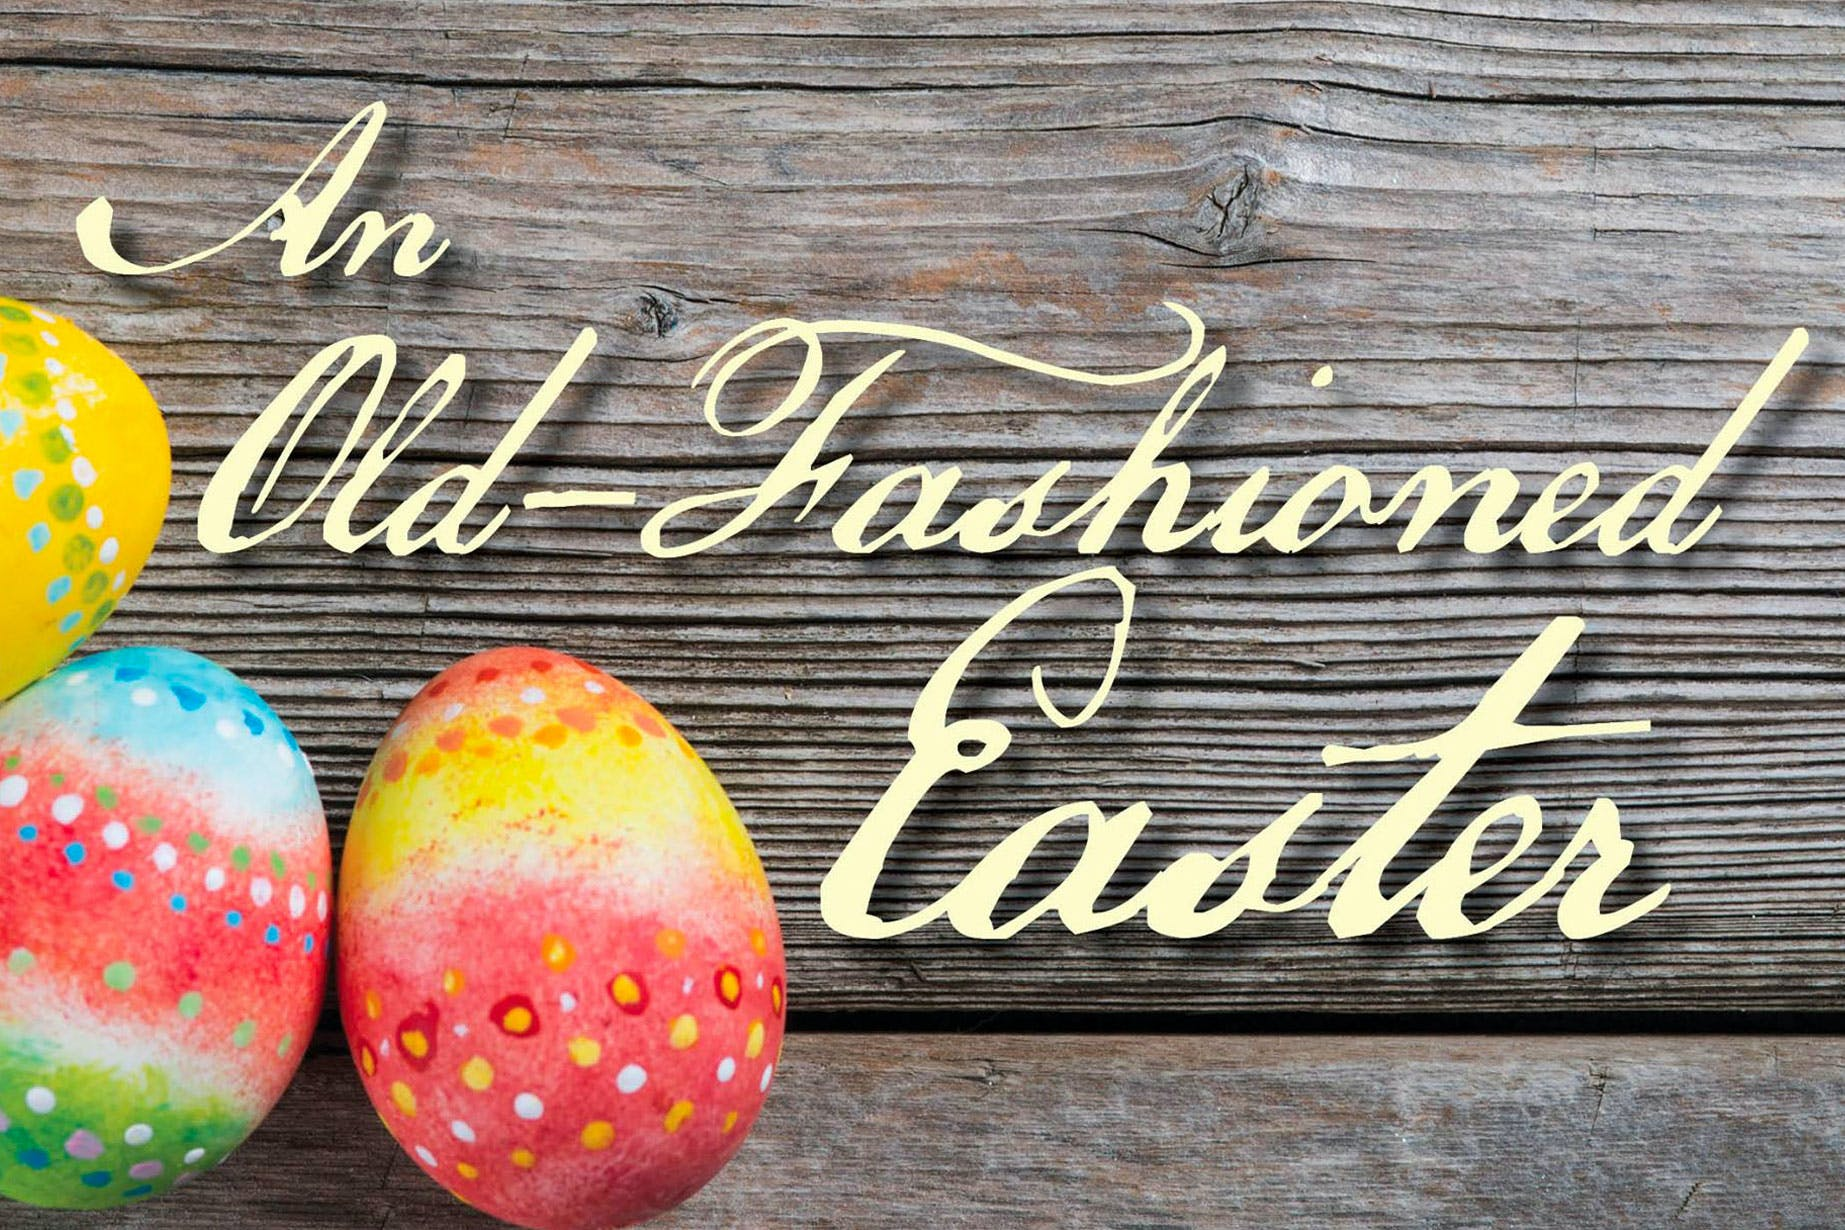 An-Old-Fashioned-Easter-richmond-tx